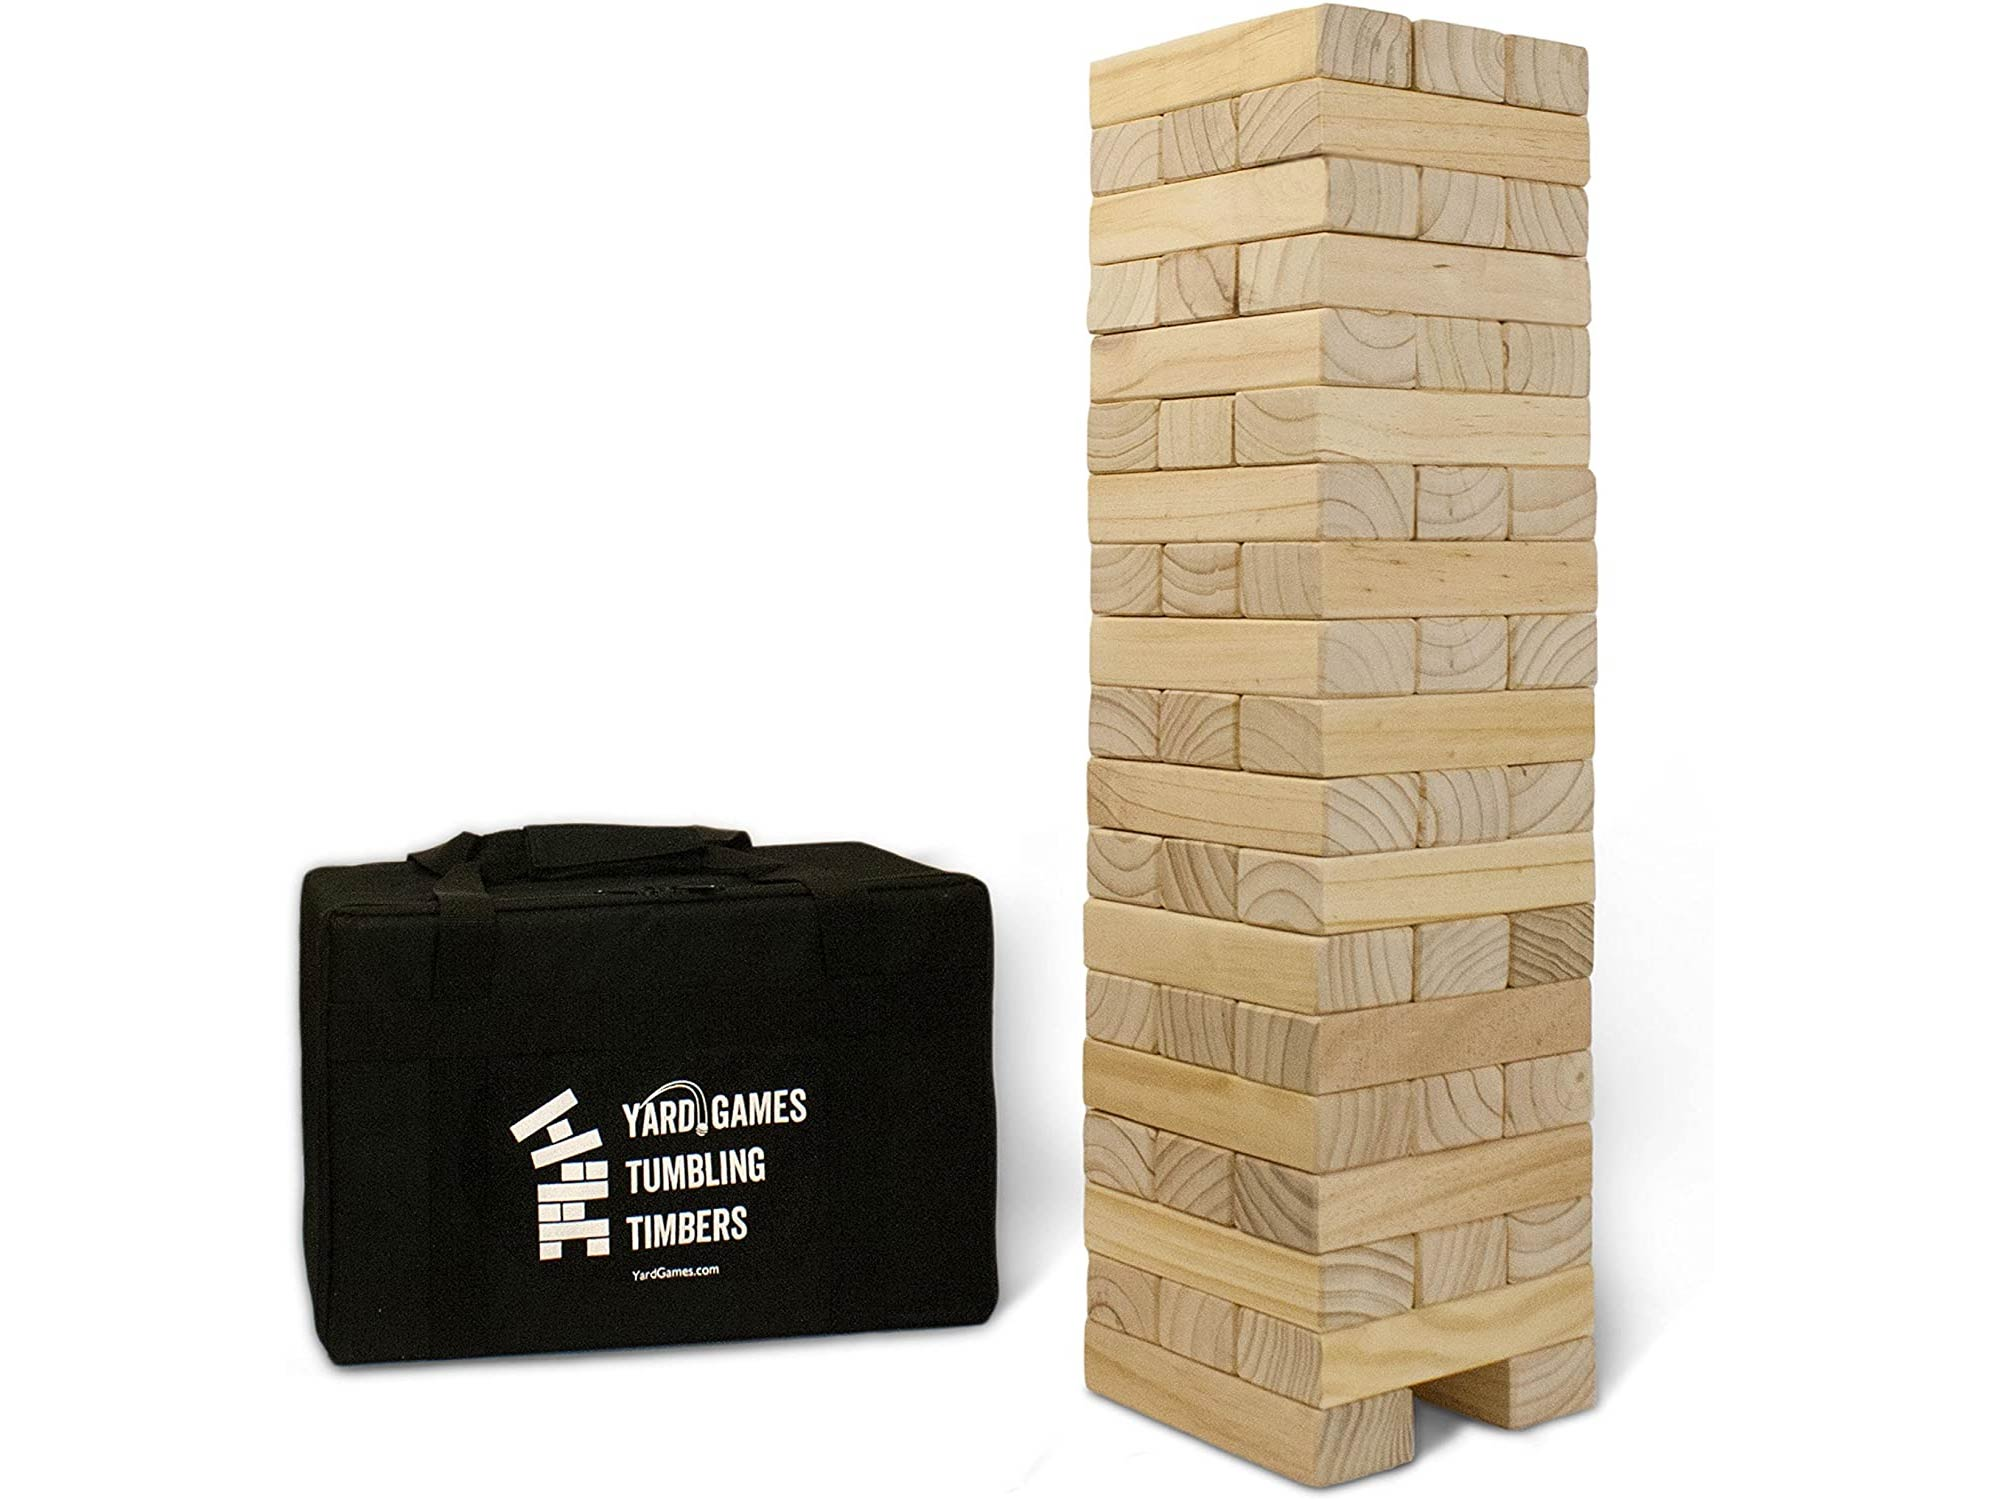 Yard Games Giant Tumbling Timbers with Carrying Case